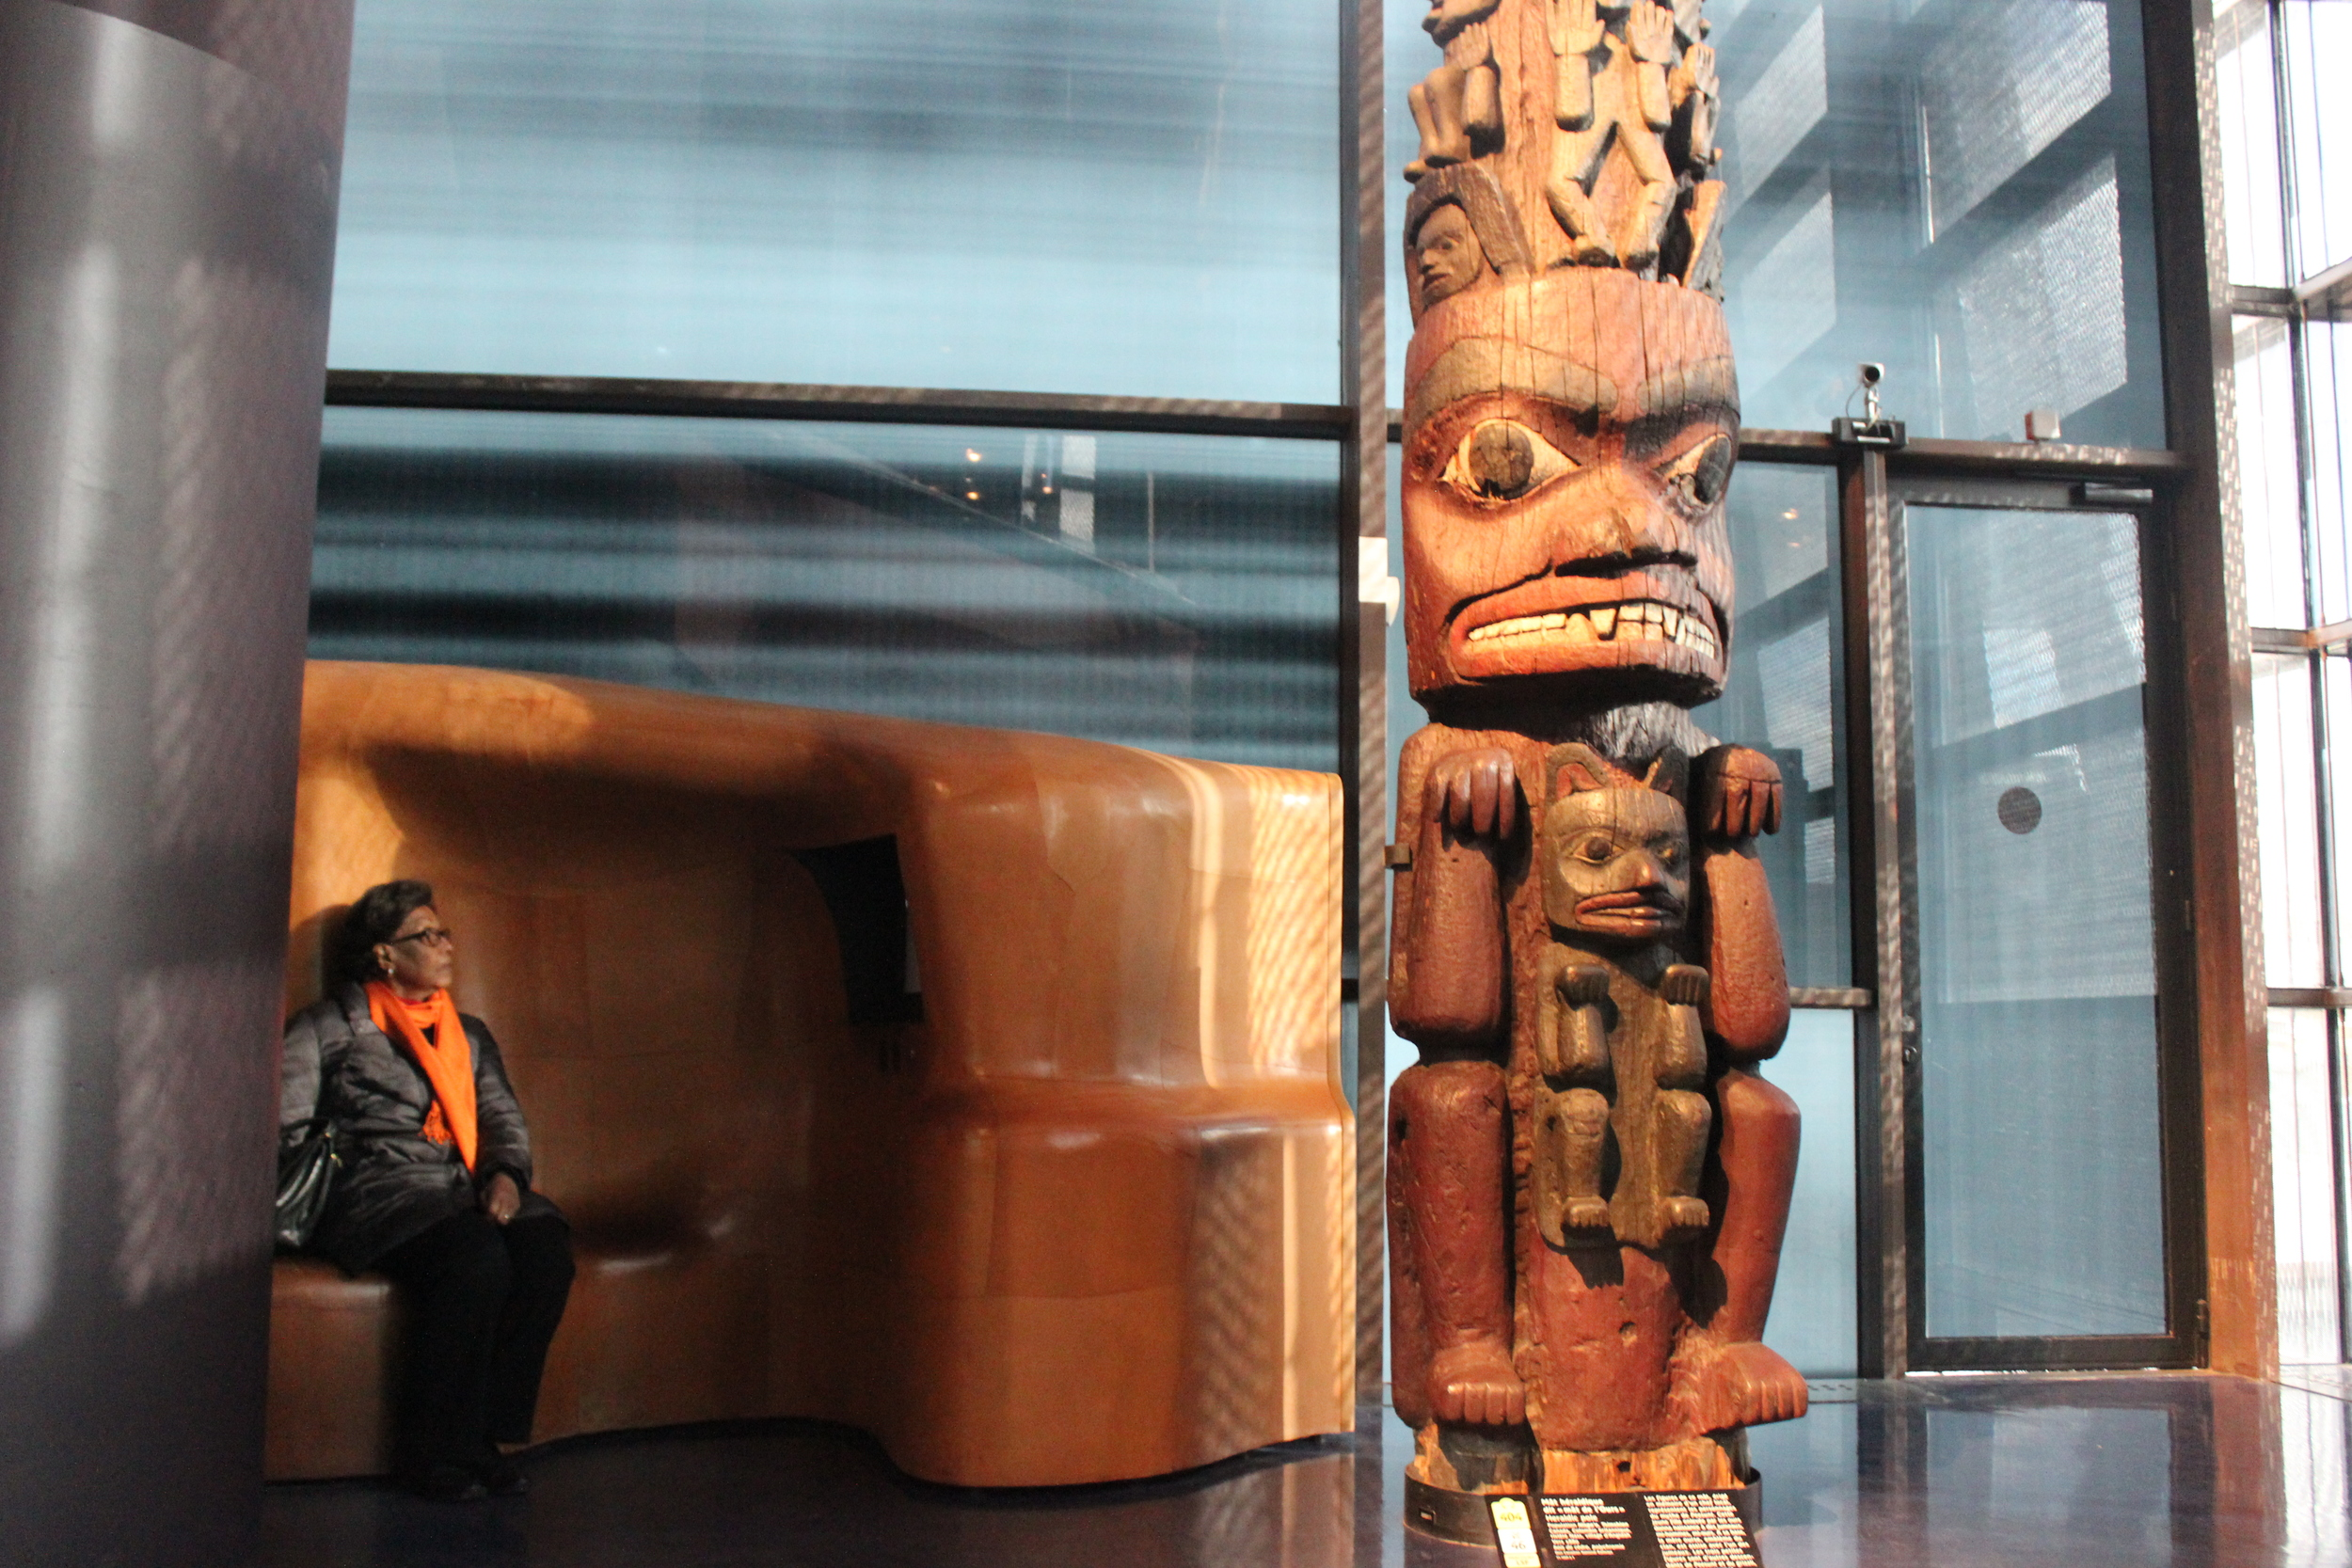 Gran taking a rest in front of a bear wolf totem in the Musée du Quai Branly